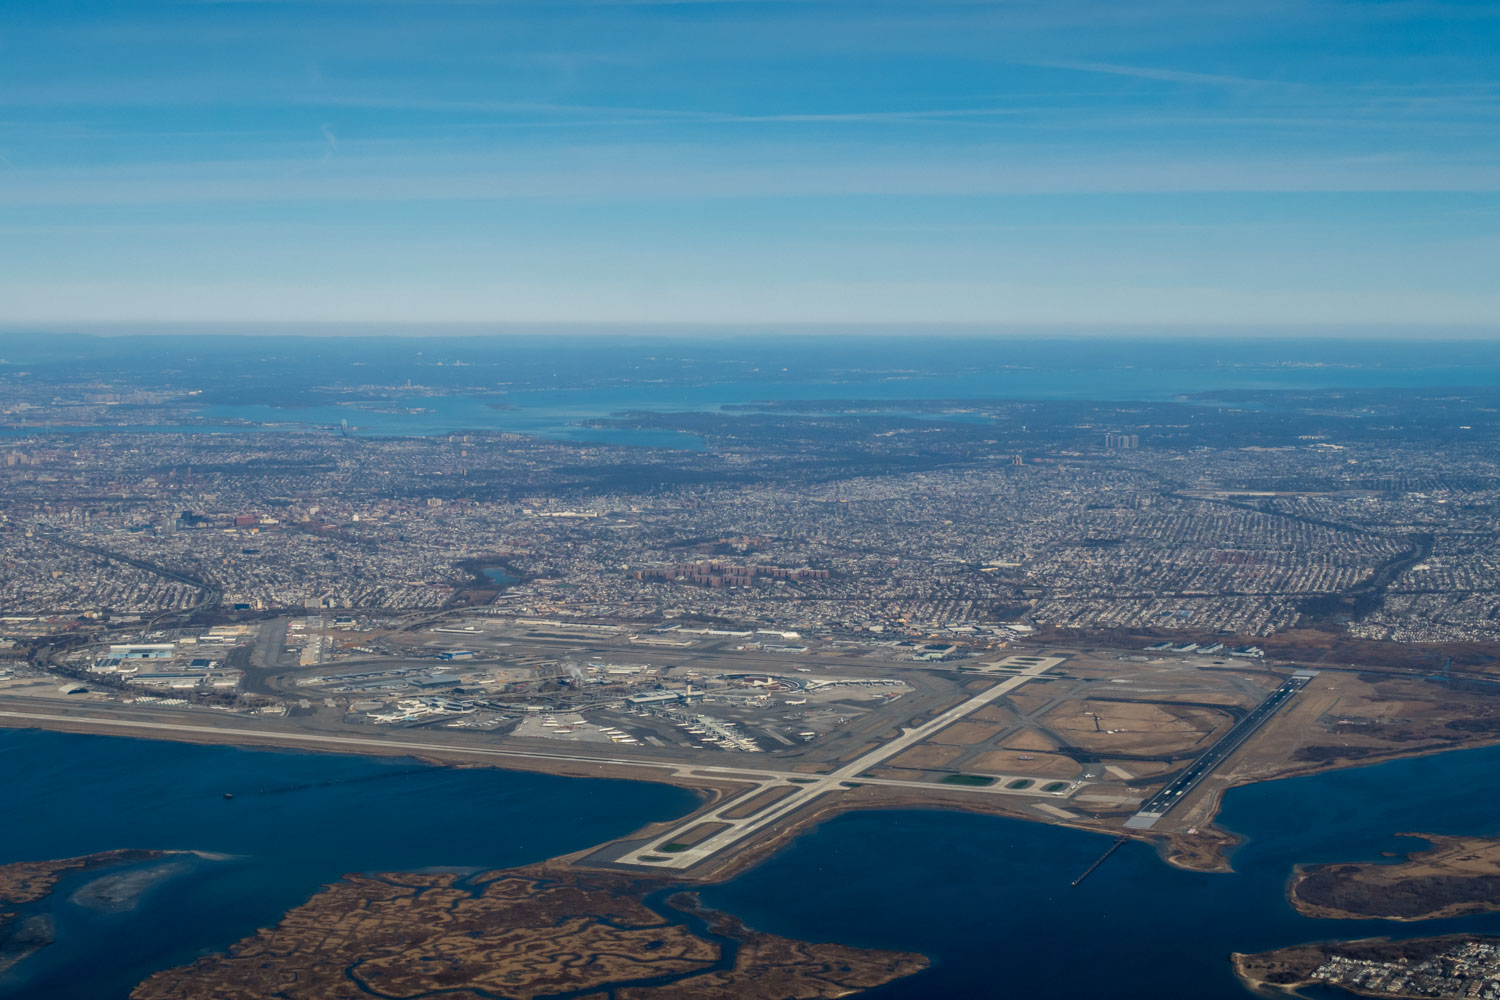 New York JFK Airport Overview